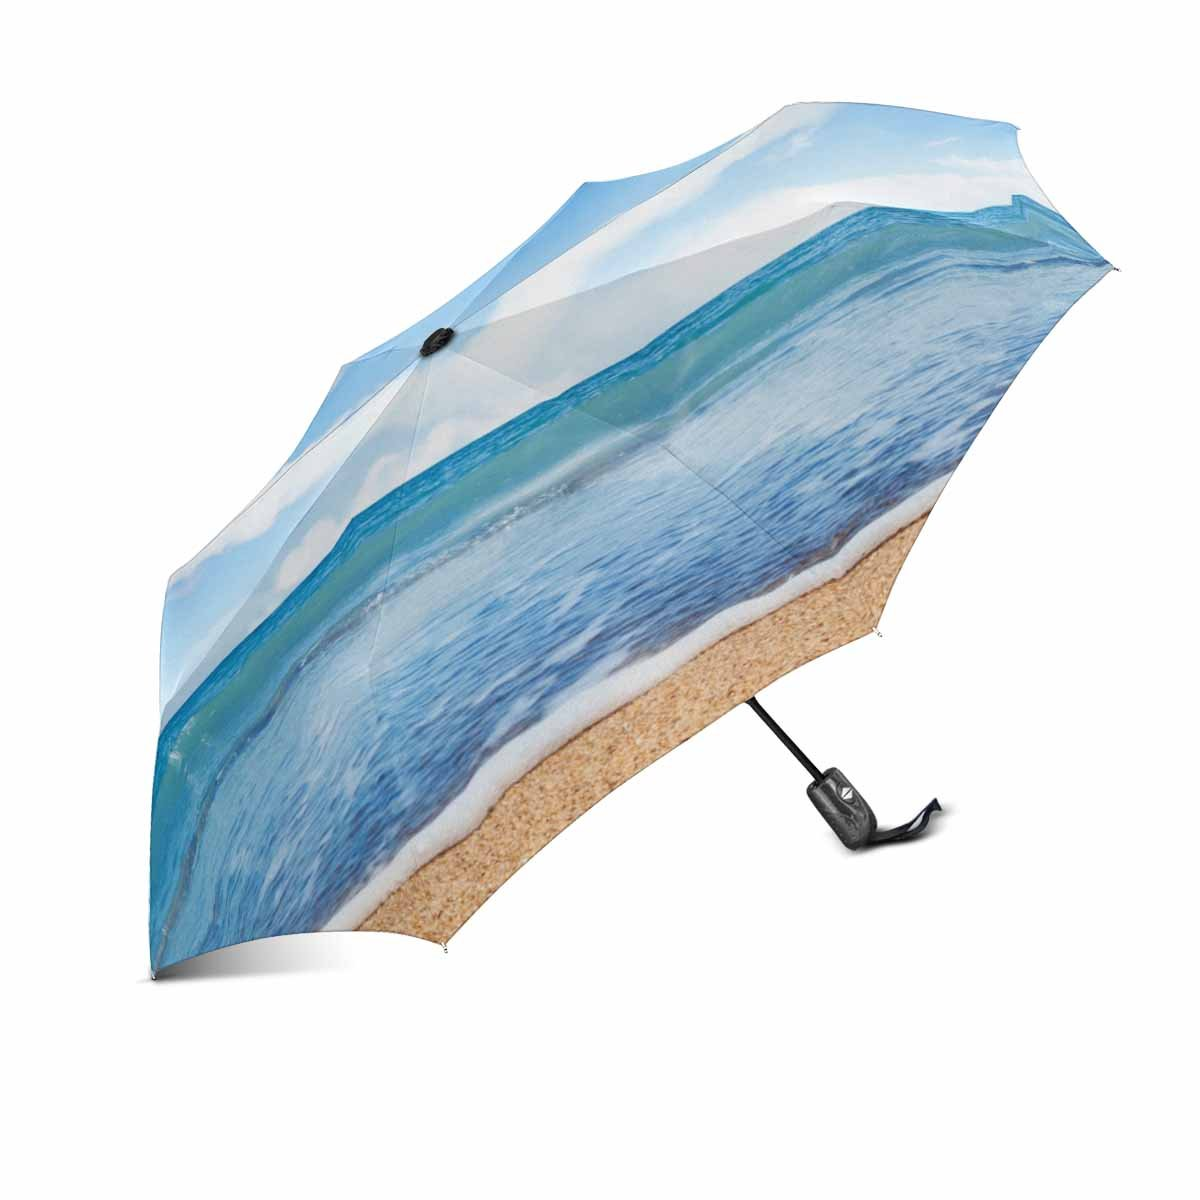 InterestPrint Tropocal Beach and Sea Love Heart Of Clouds On Blue Sky Windproof Auto Open and Close Foldable Umbrella, Lightweight Portable Outdoor Sun Umbrella with UV Protection